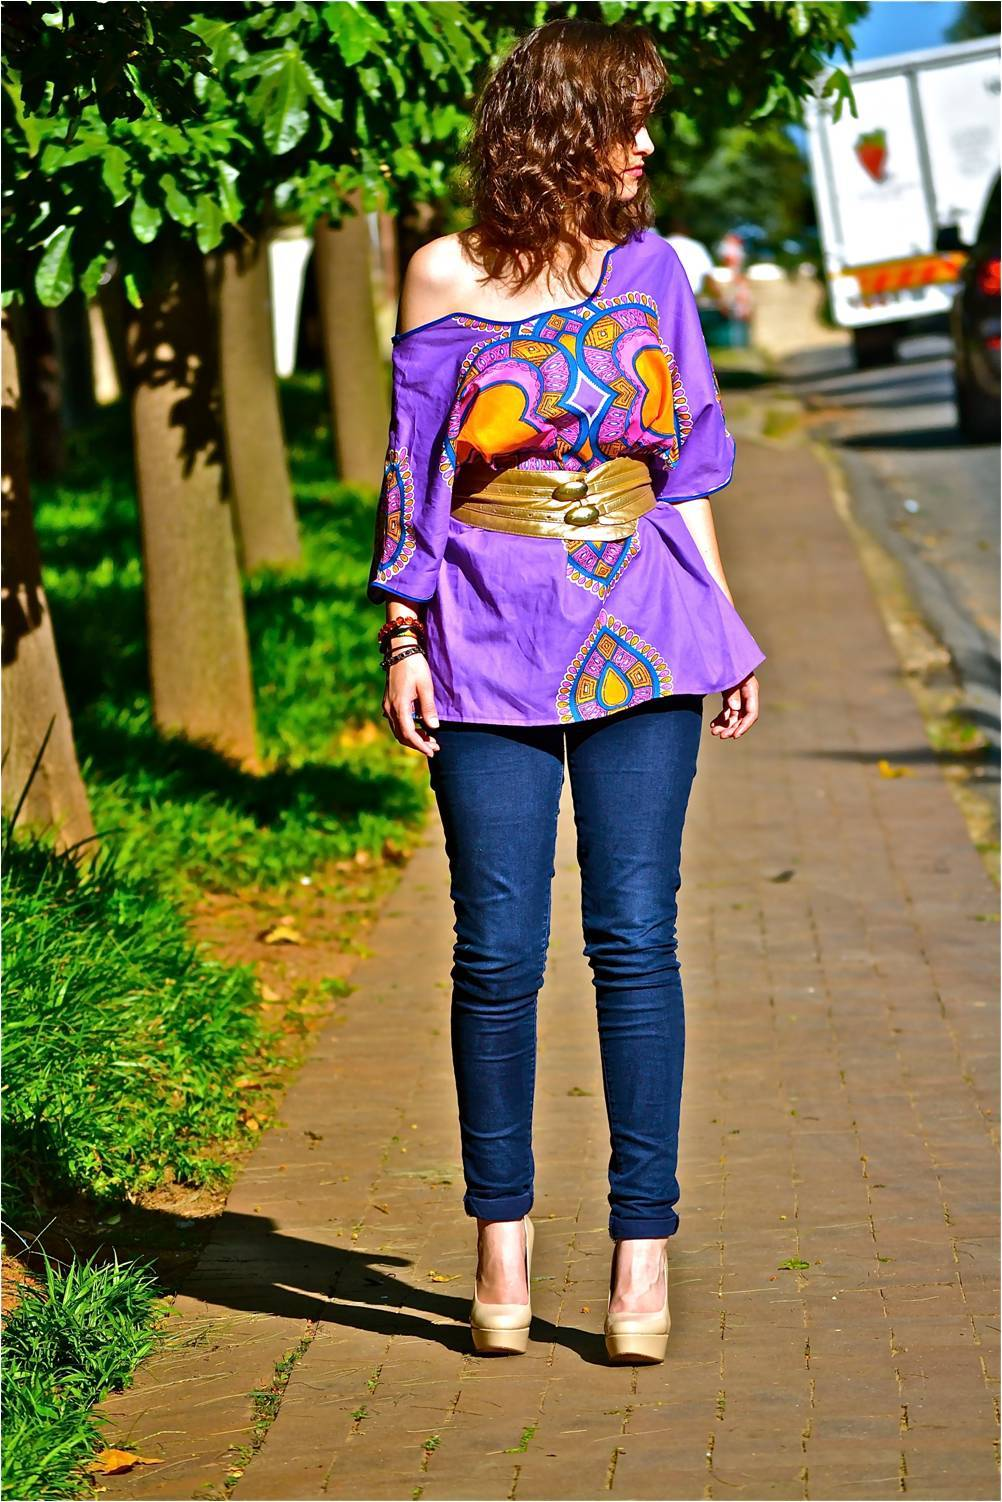 South African Street Style | Stacey Photographed by: www.anthonybila.tumblr.com